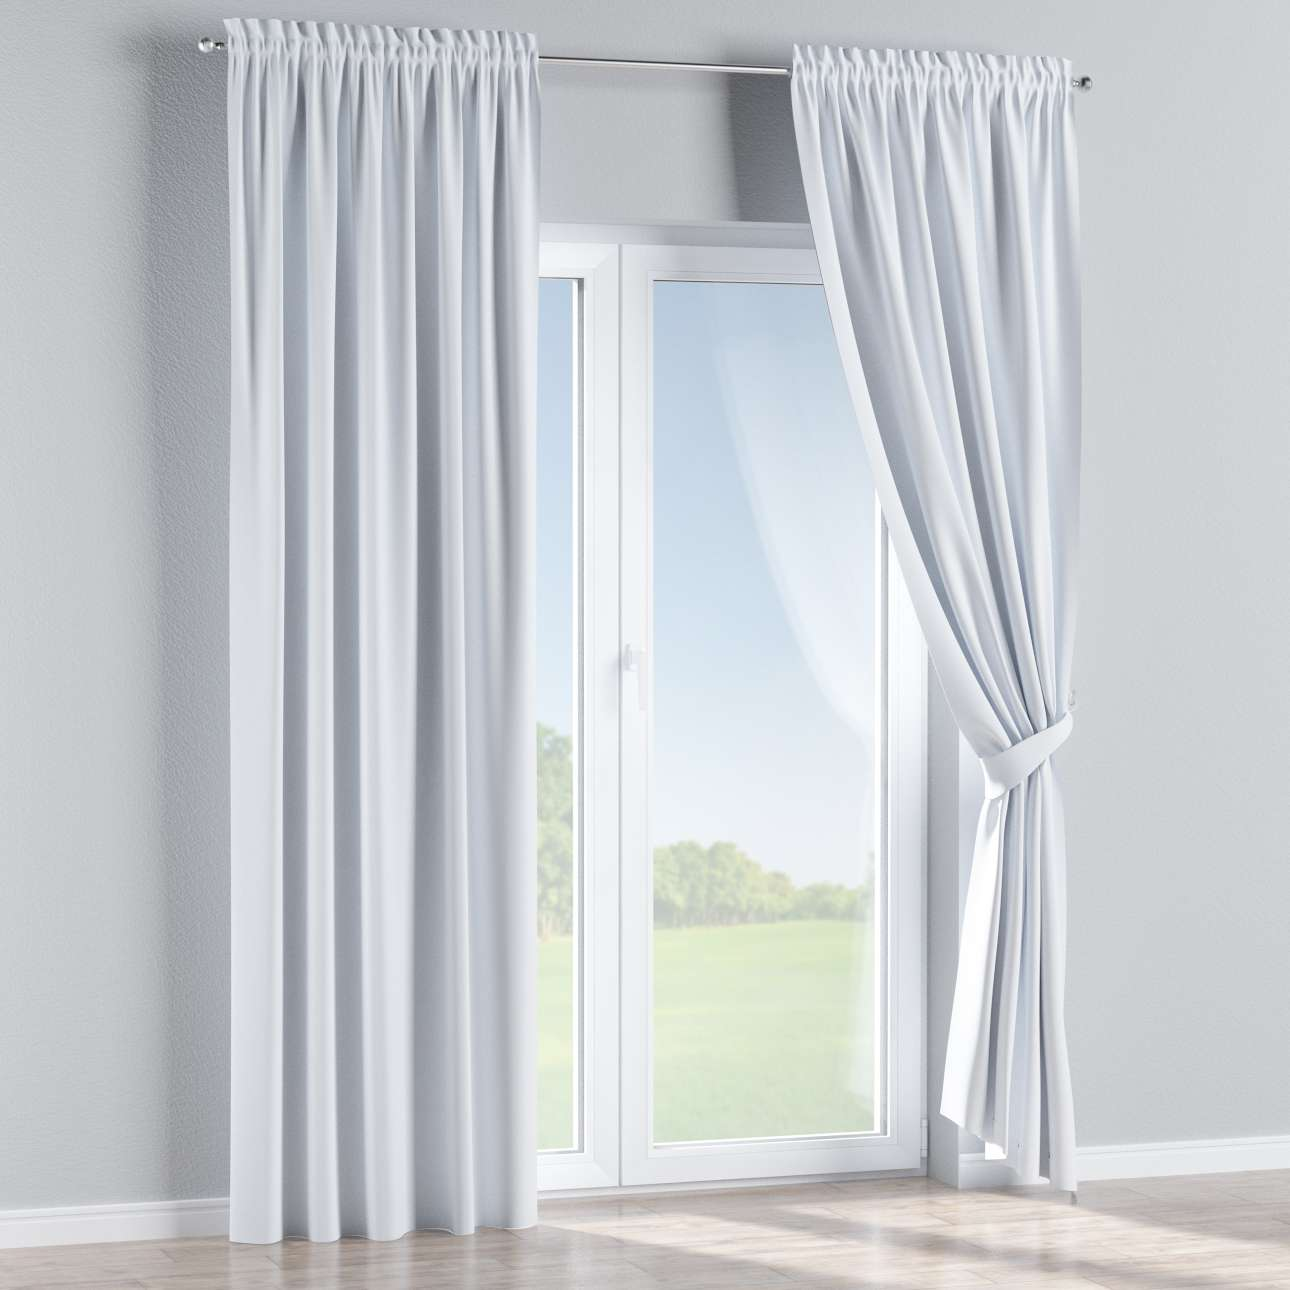 Blackout slot and frill curtains 140 × 260 cm (approx. 55 × 102 inch) in collection Blackout, fabric: 269-01